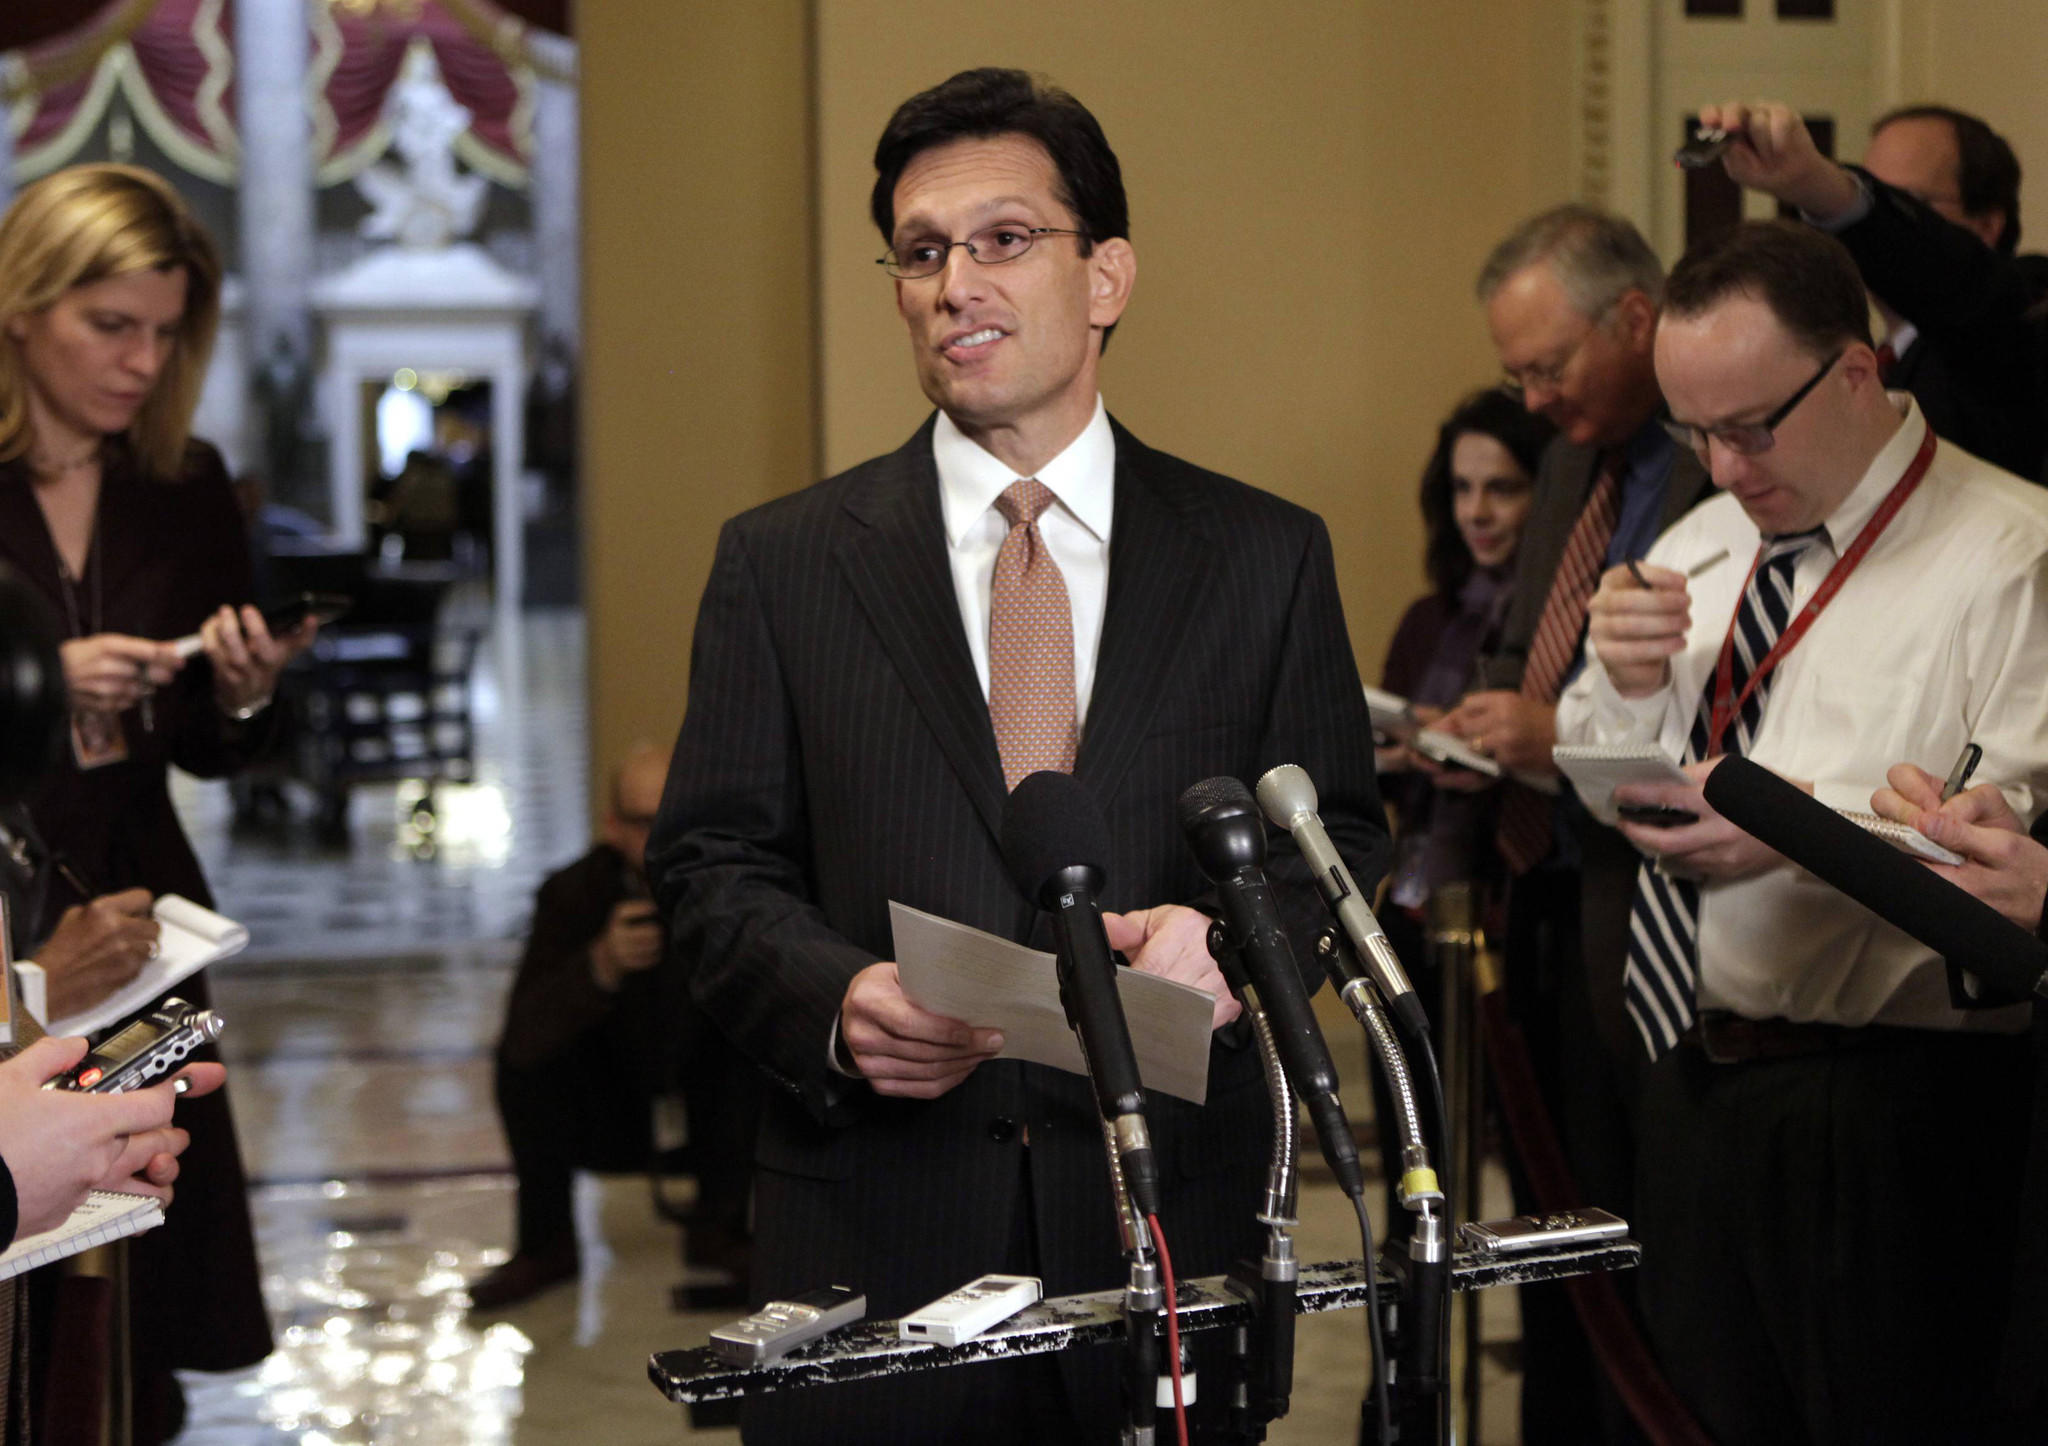 Majority Leader Eric Cantor speaks to the media on Capitol Hill in Washington, D.C., in December 2012.